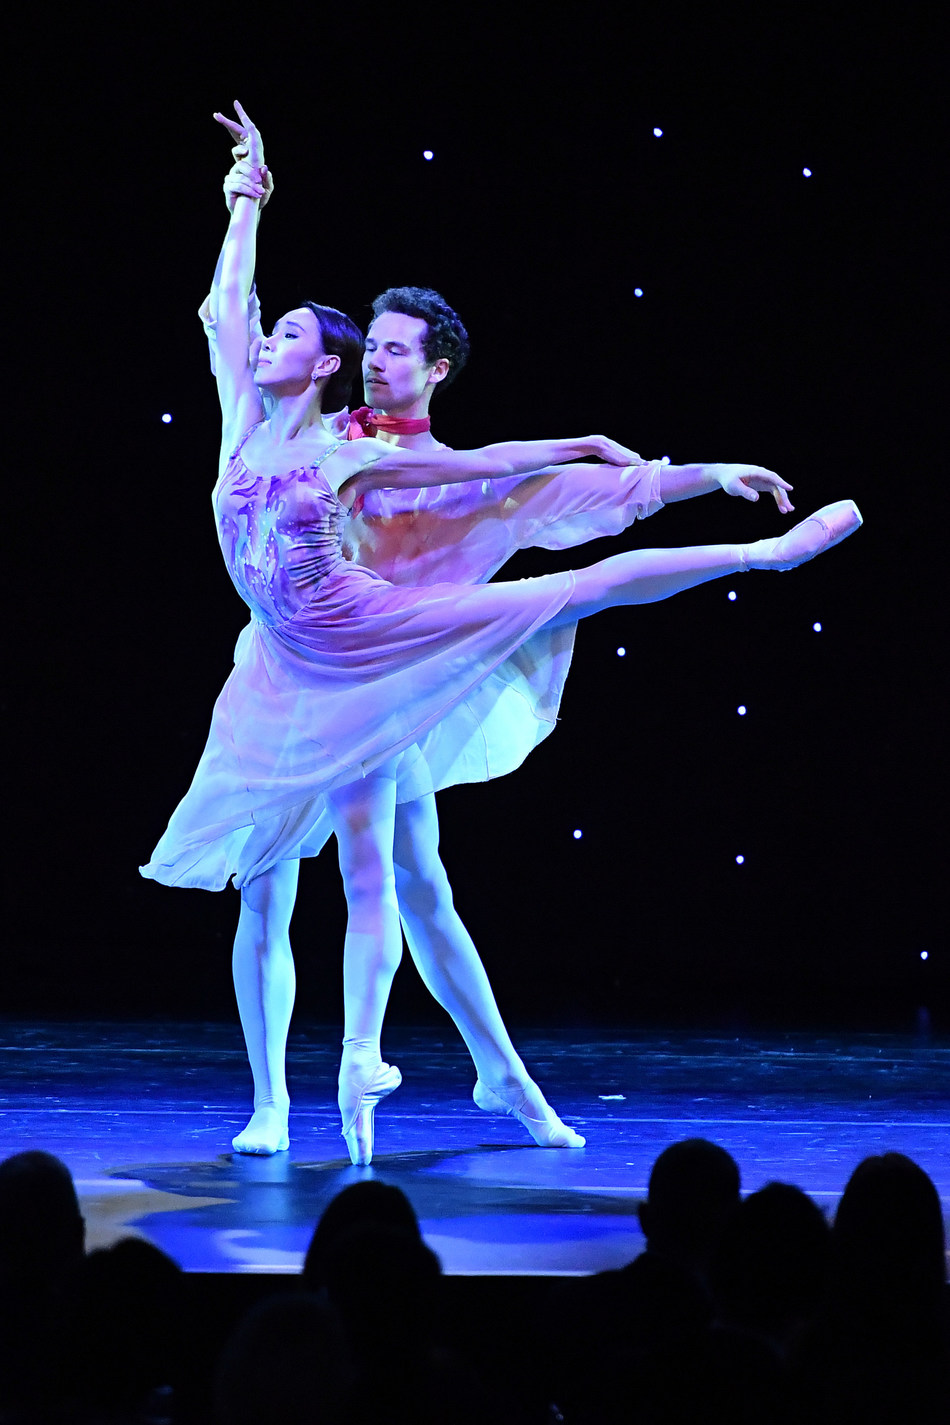 Hee Seo and Cory Stearns perform at ABT Holiday Gala 2018 (Photo Credit: Vince Bucci Photography)